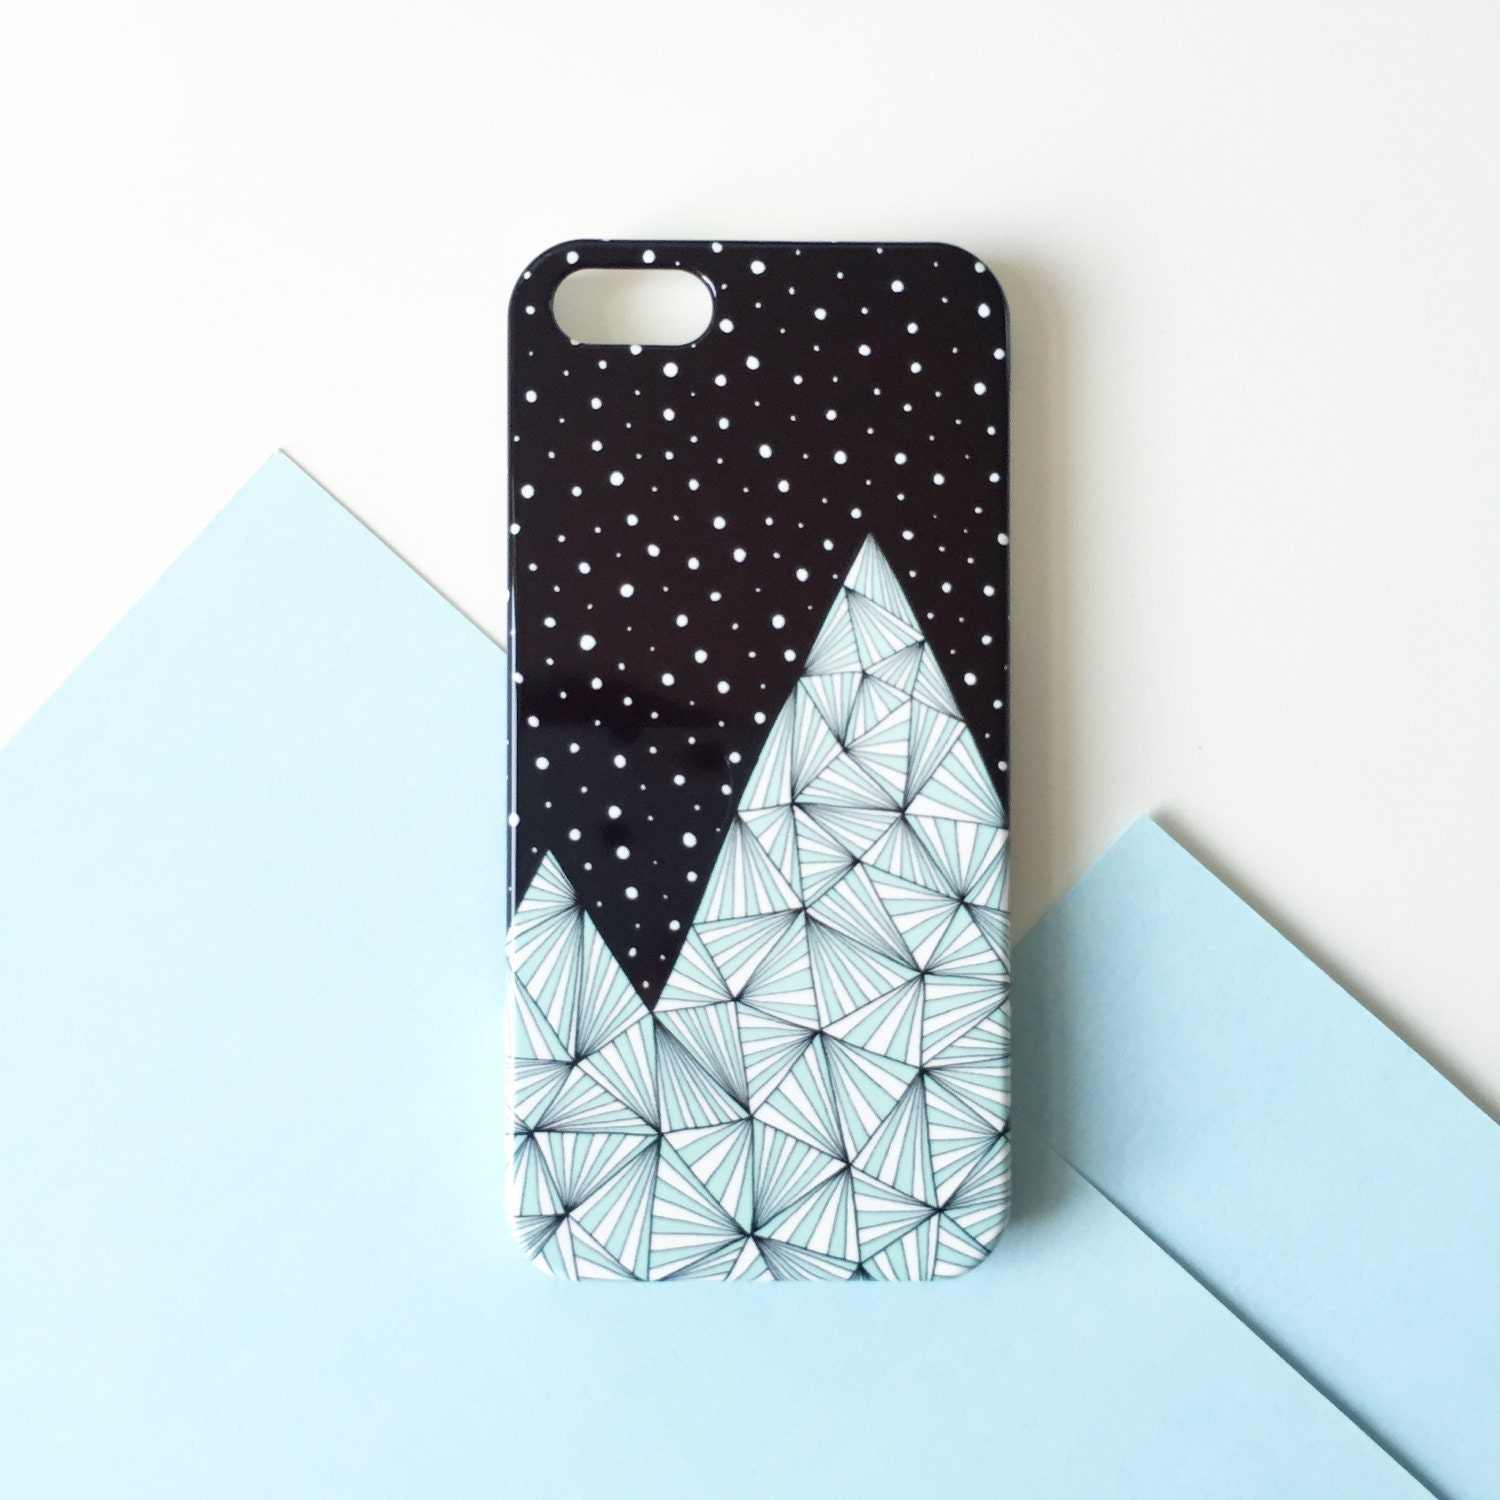 Blue Mountain mobile phone case  mountain iPhone 7 iPhone 6 iPhone 6S iPhone SE iPhone 5 iPhone 5s iPhone 5C  illustrated phone case